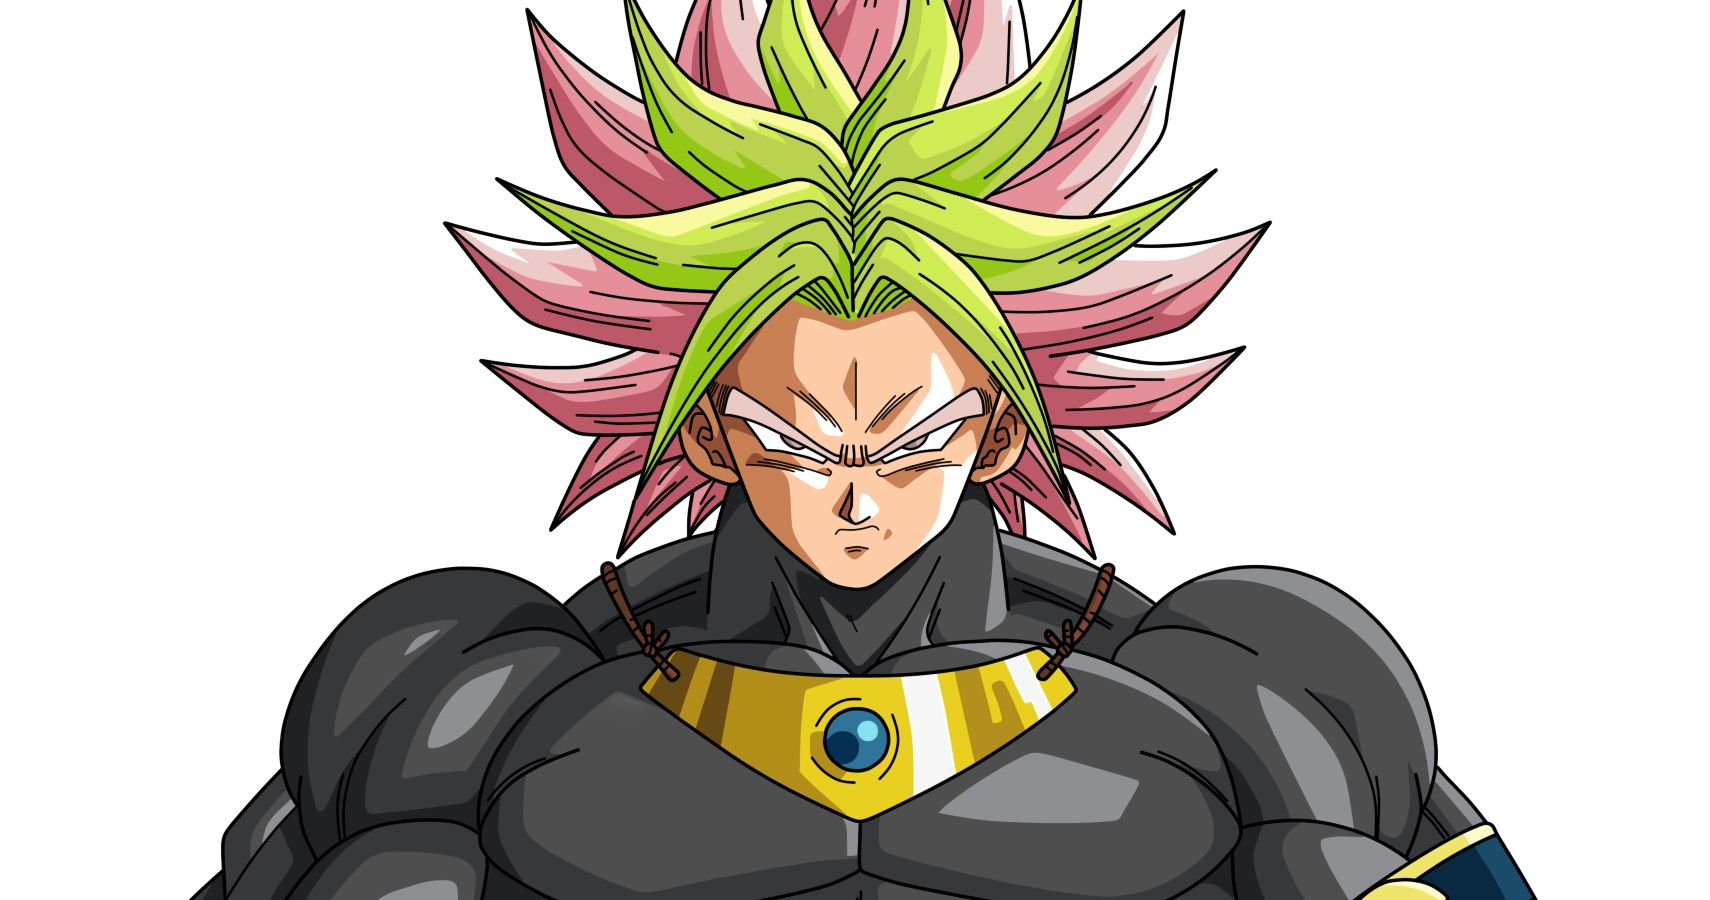 Dragon Ball Z The 25 Craziest Fusions From The Video Games